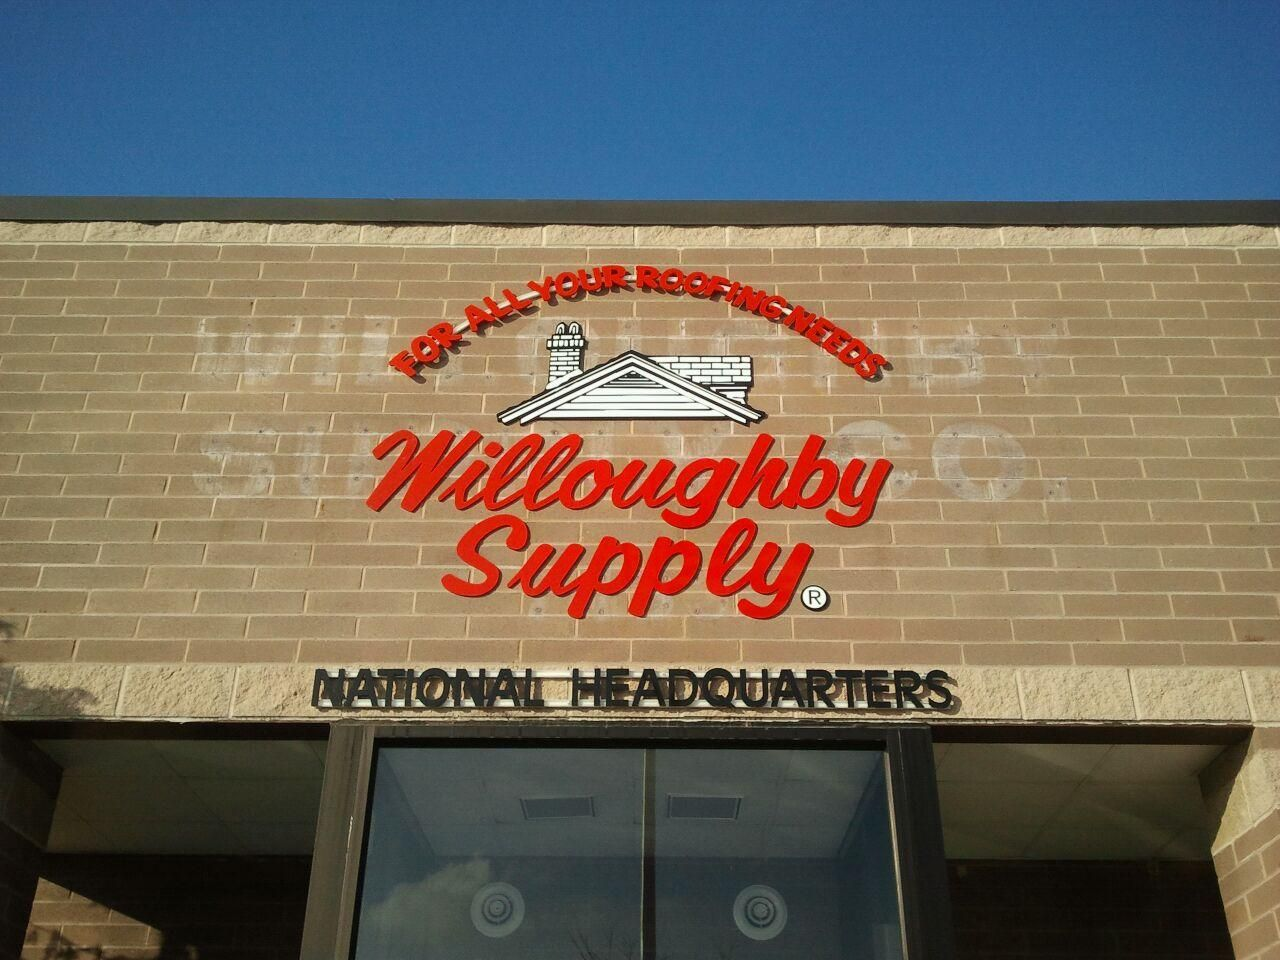 Willoughby Supply Mentor, Ohio Branch Our National